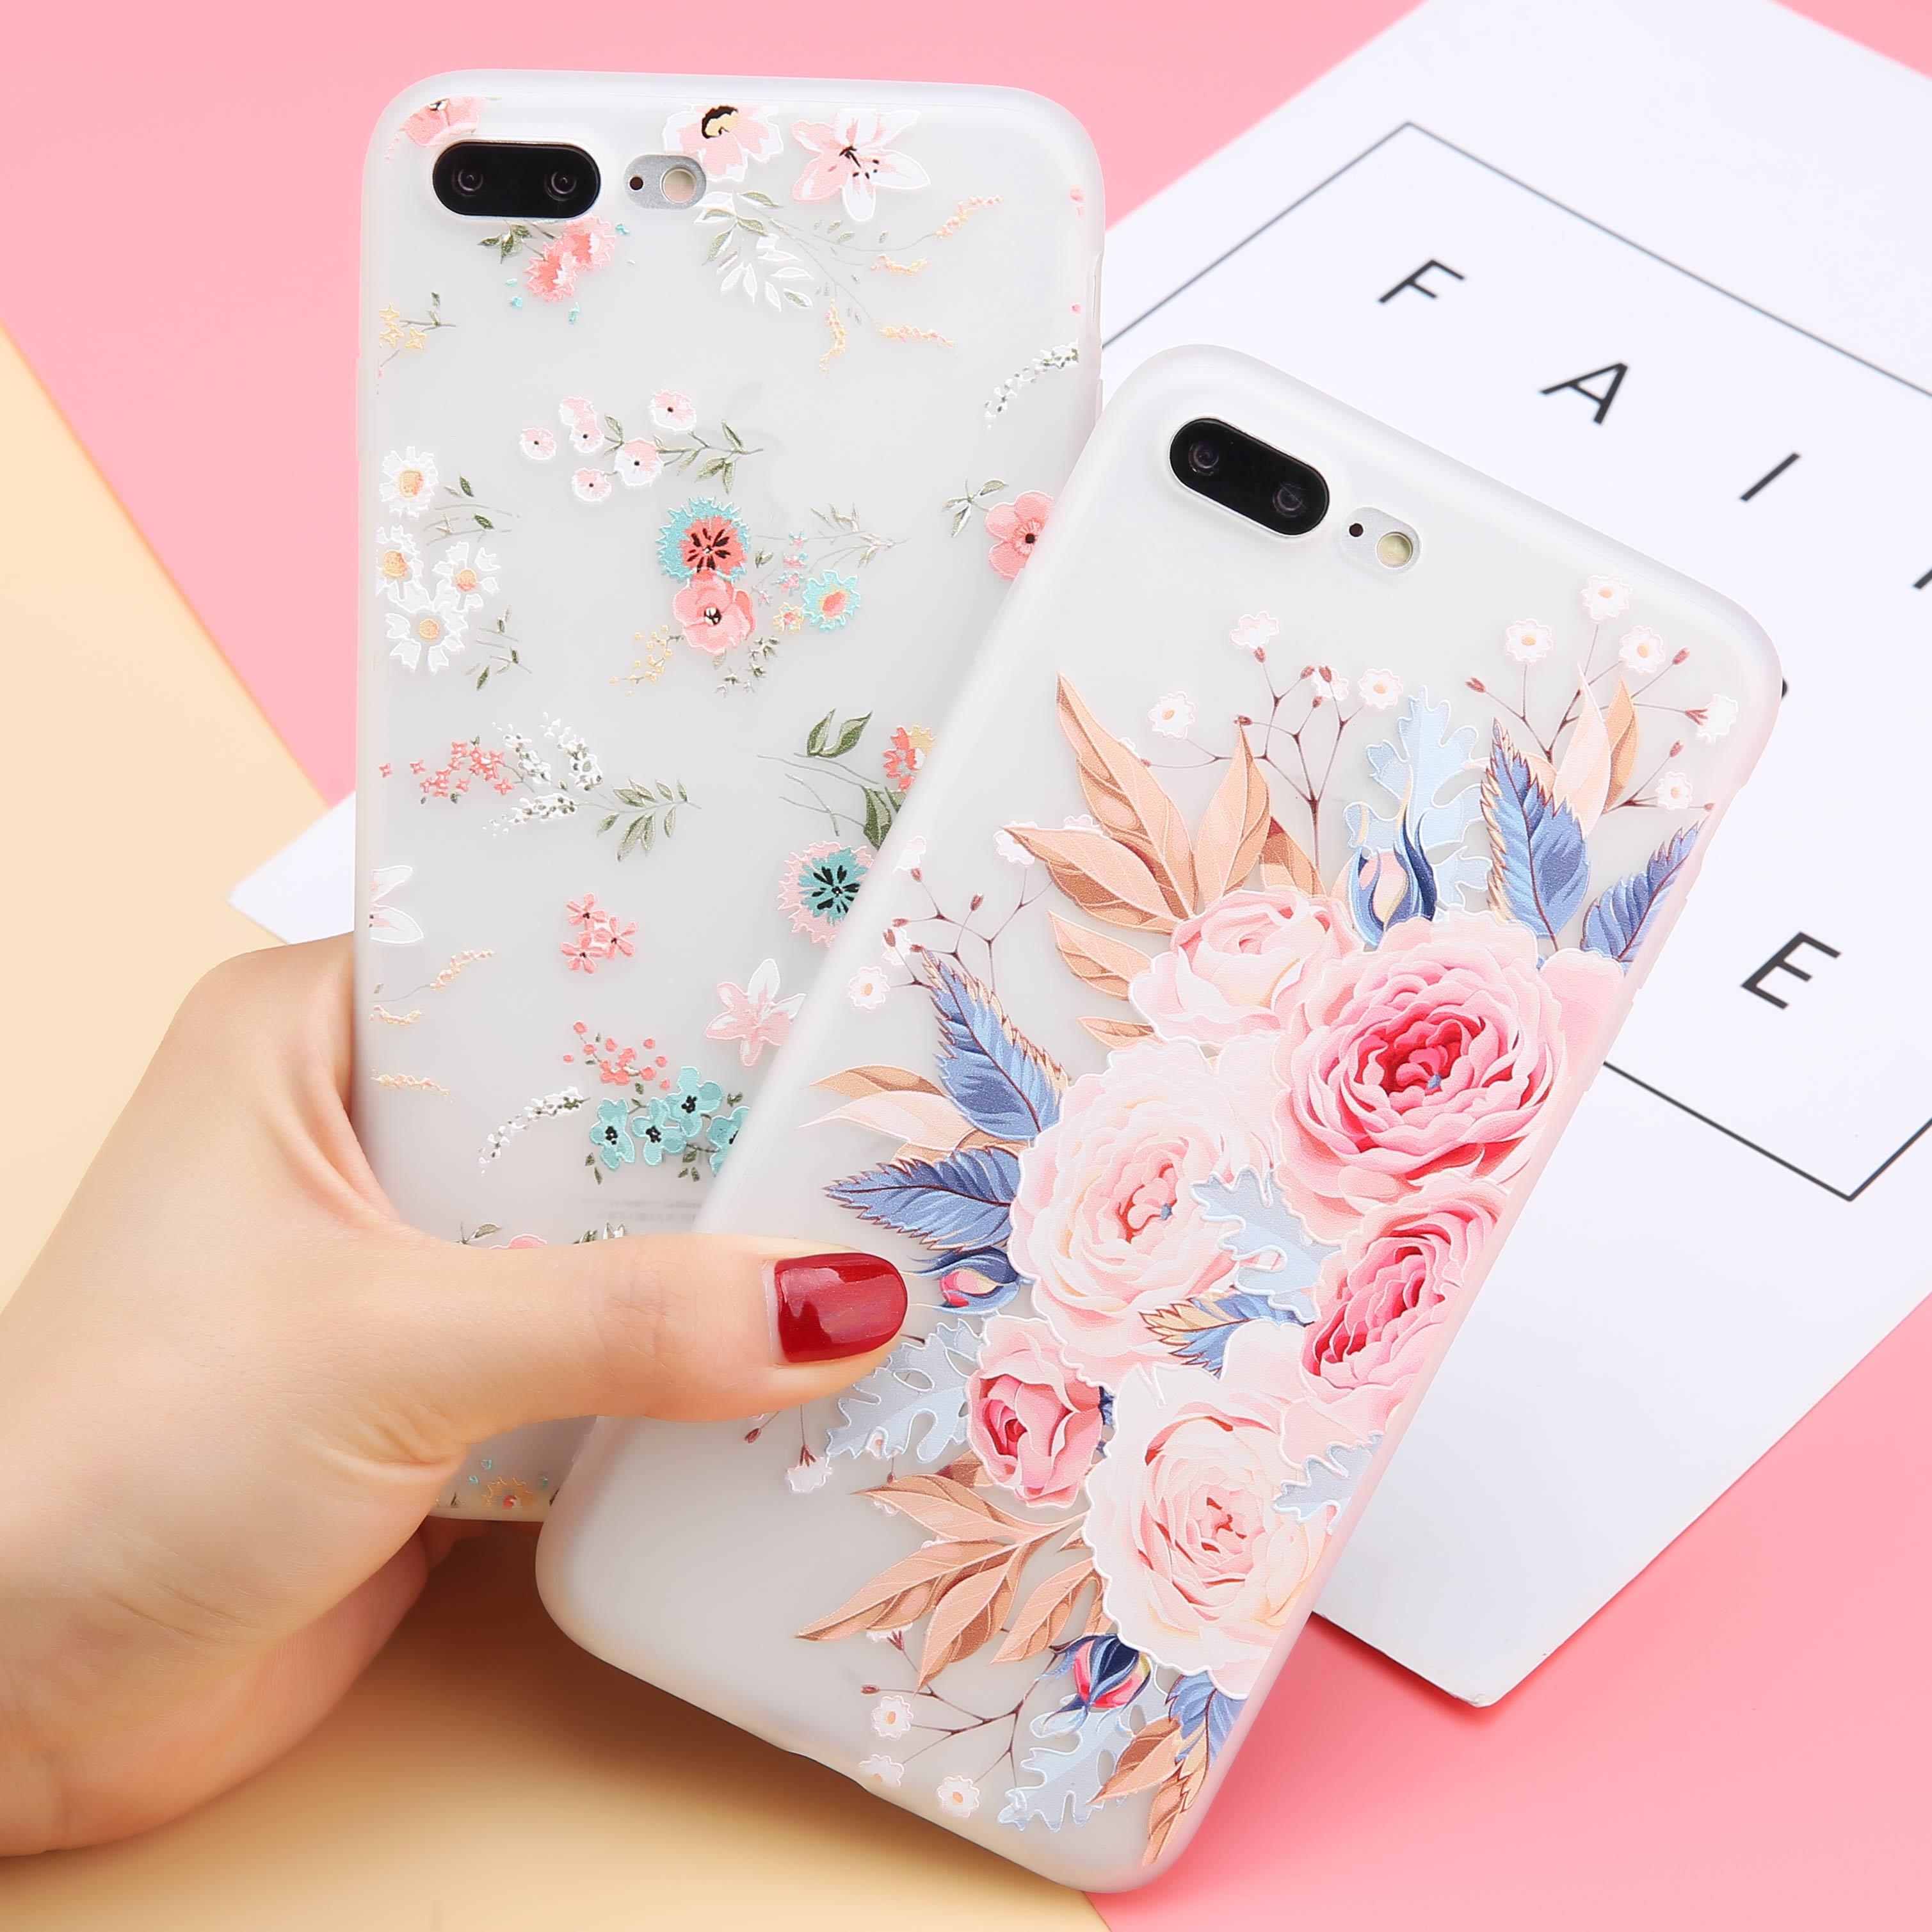 USLION Print Flower Transparent Soft TPU Phone Case for iPhone X XR XS <strong>MAX</strong> 5 6 7 8 Plus